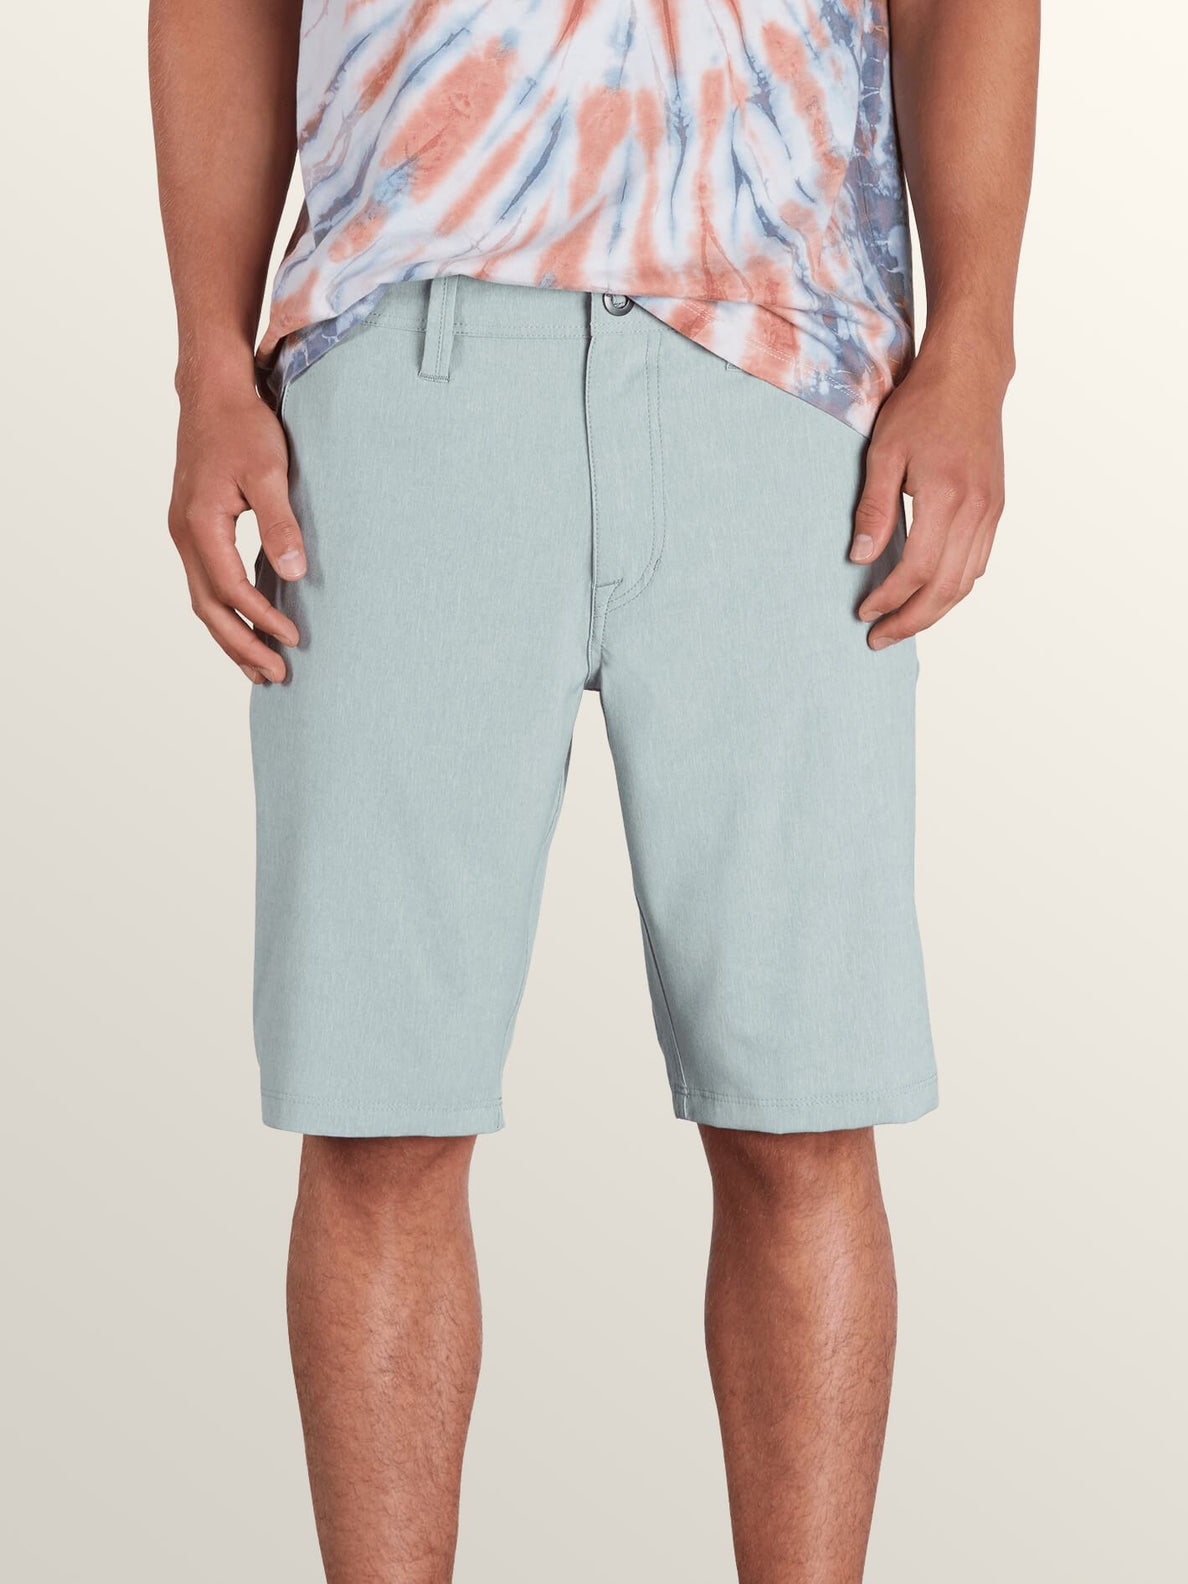 Frickin Surf N' Turf Static Hybrid Shorts In Lead, Front View